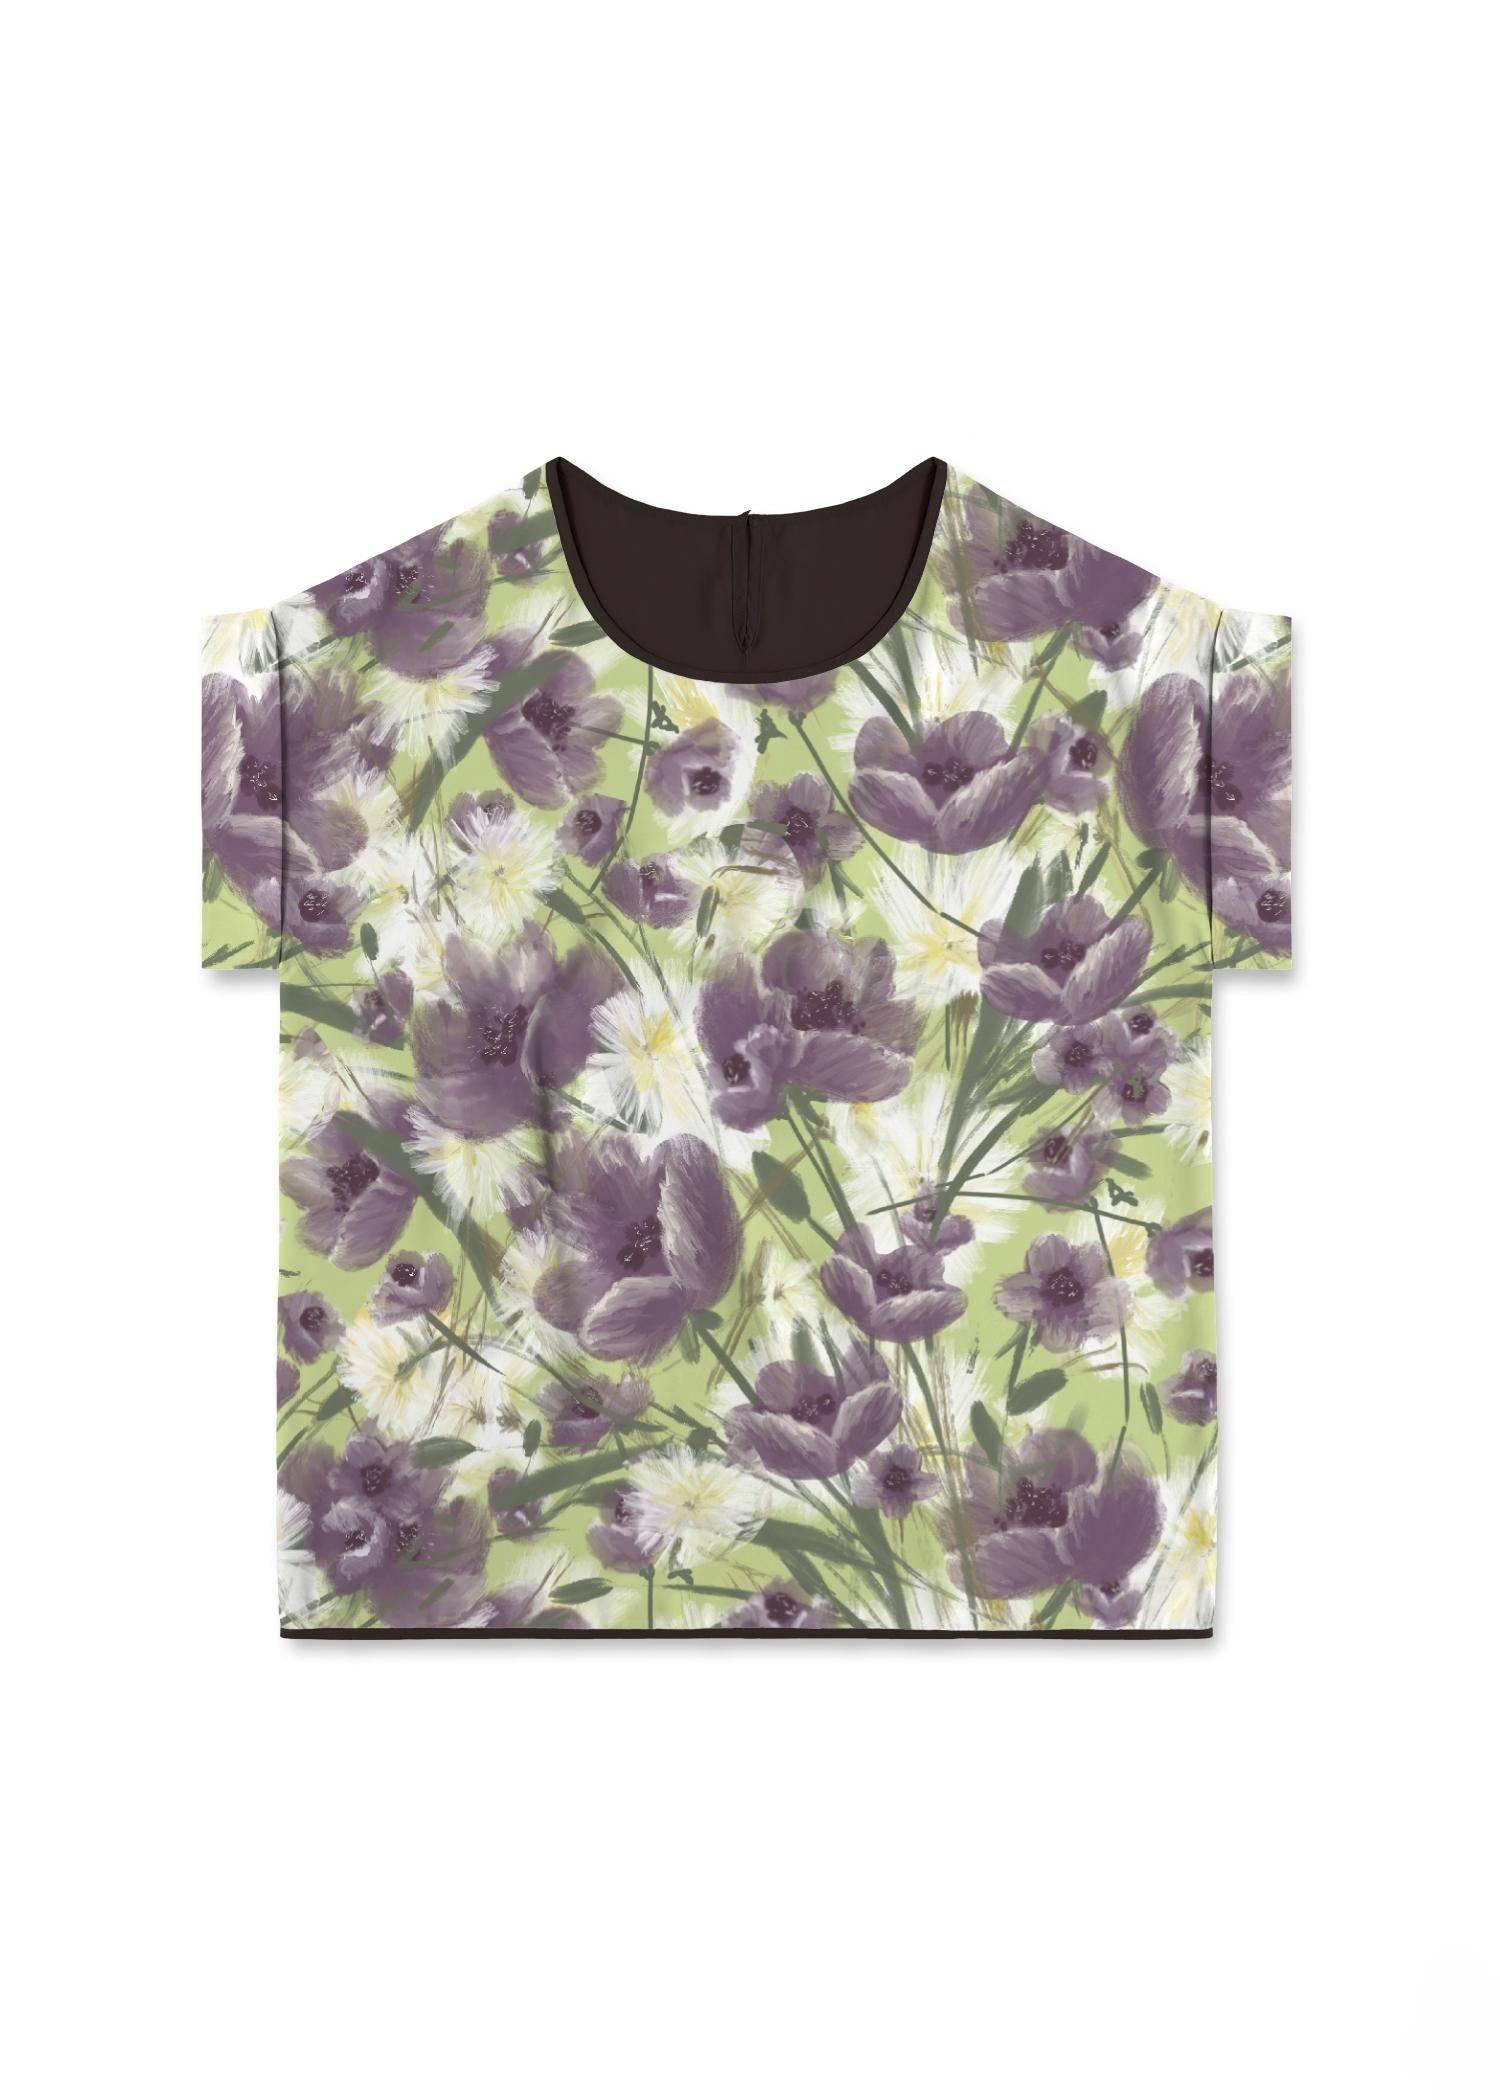 VIDA Modern Tee - Mellow Garden Too by VIDA Original Artist  - Size: Medium